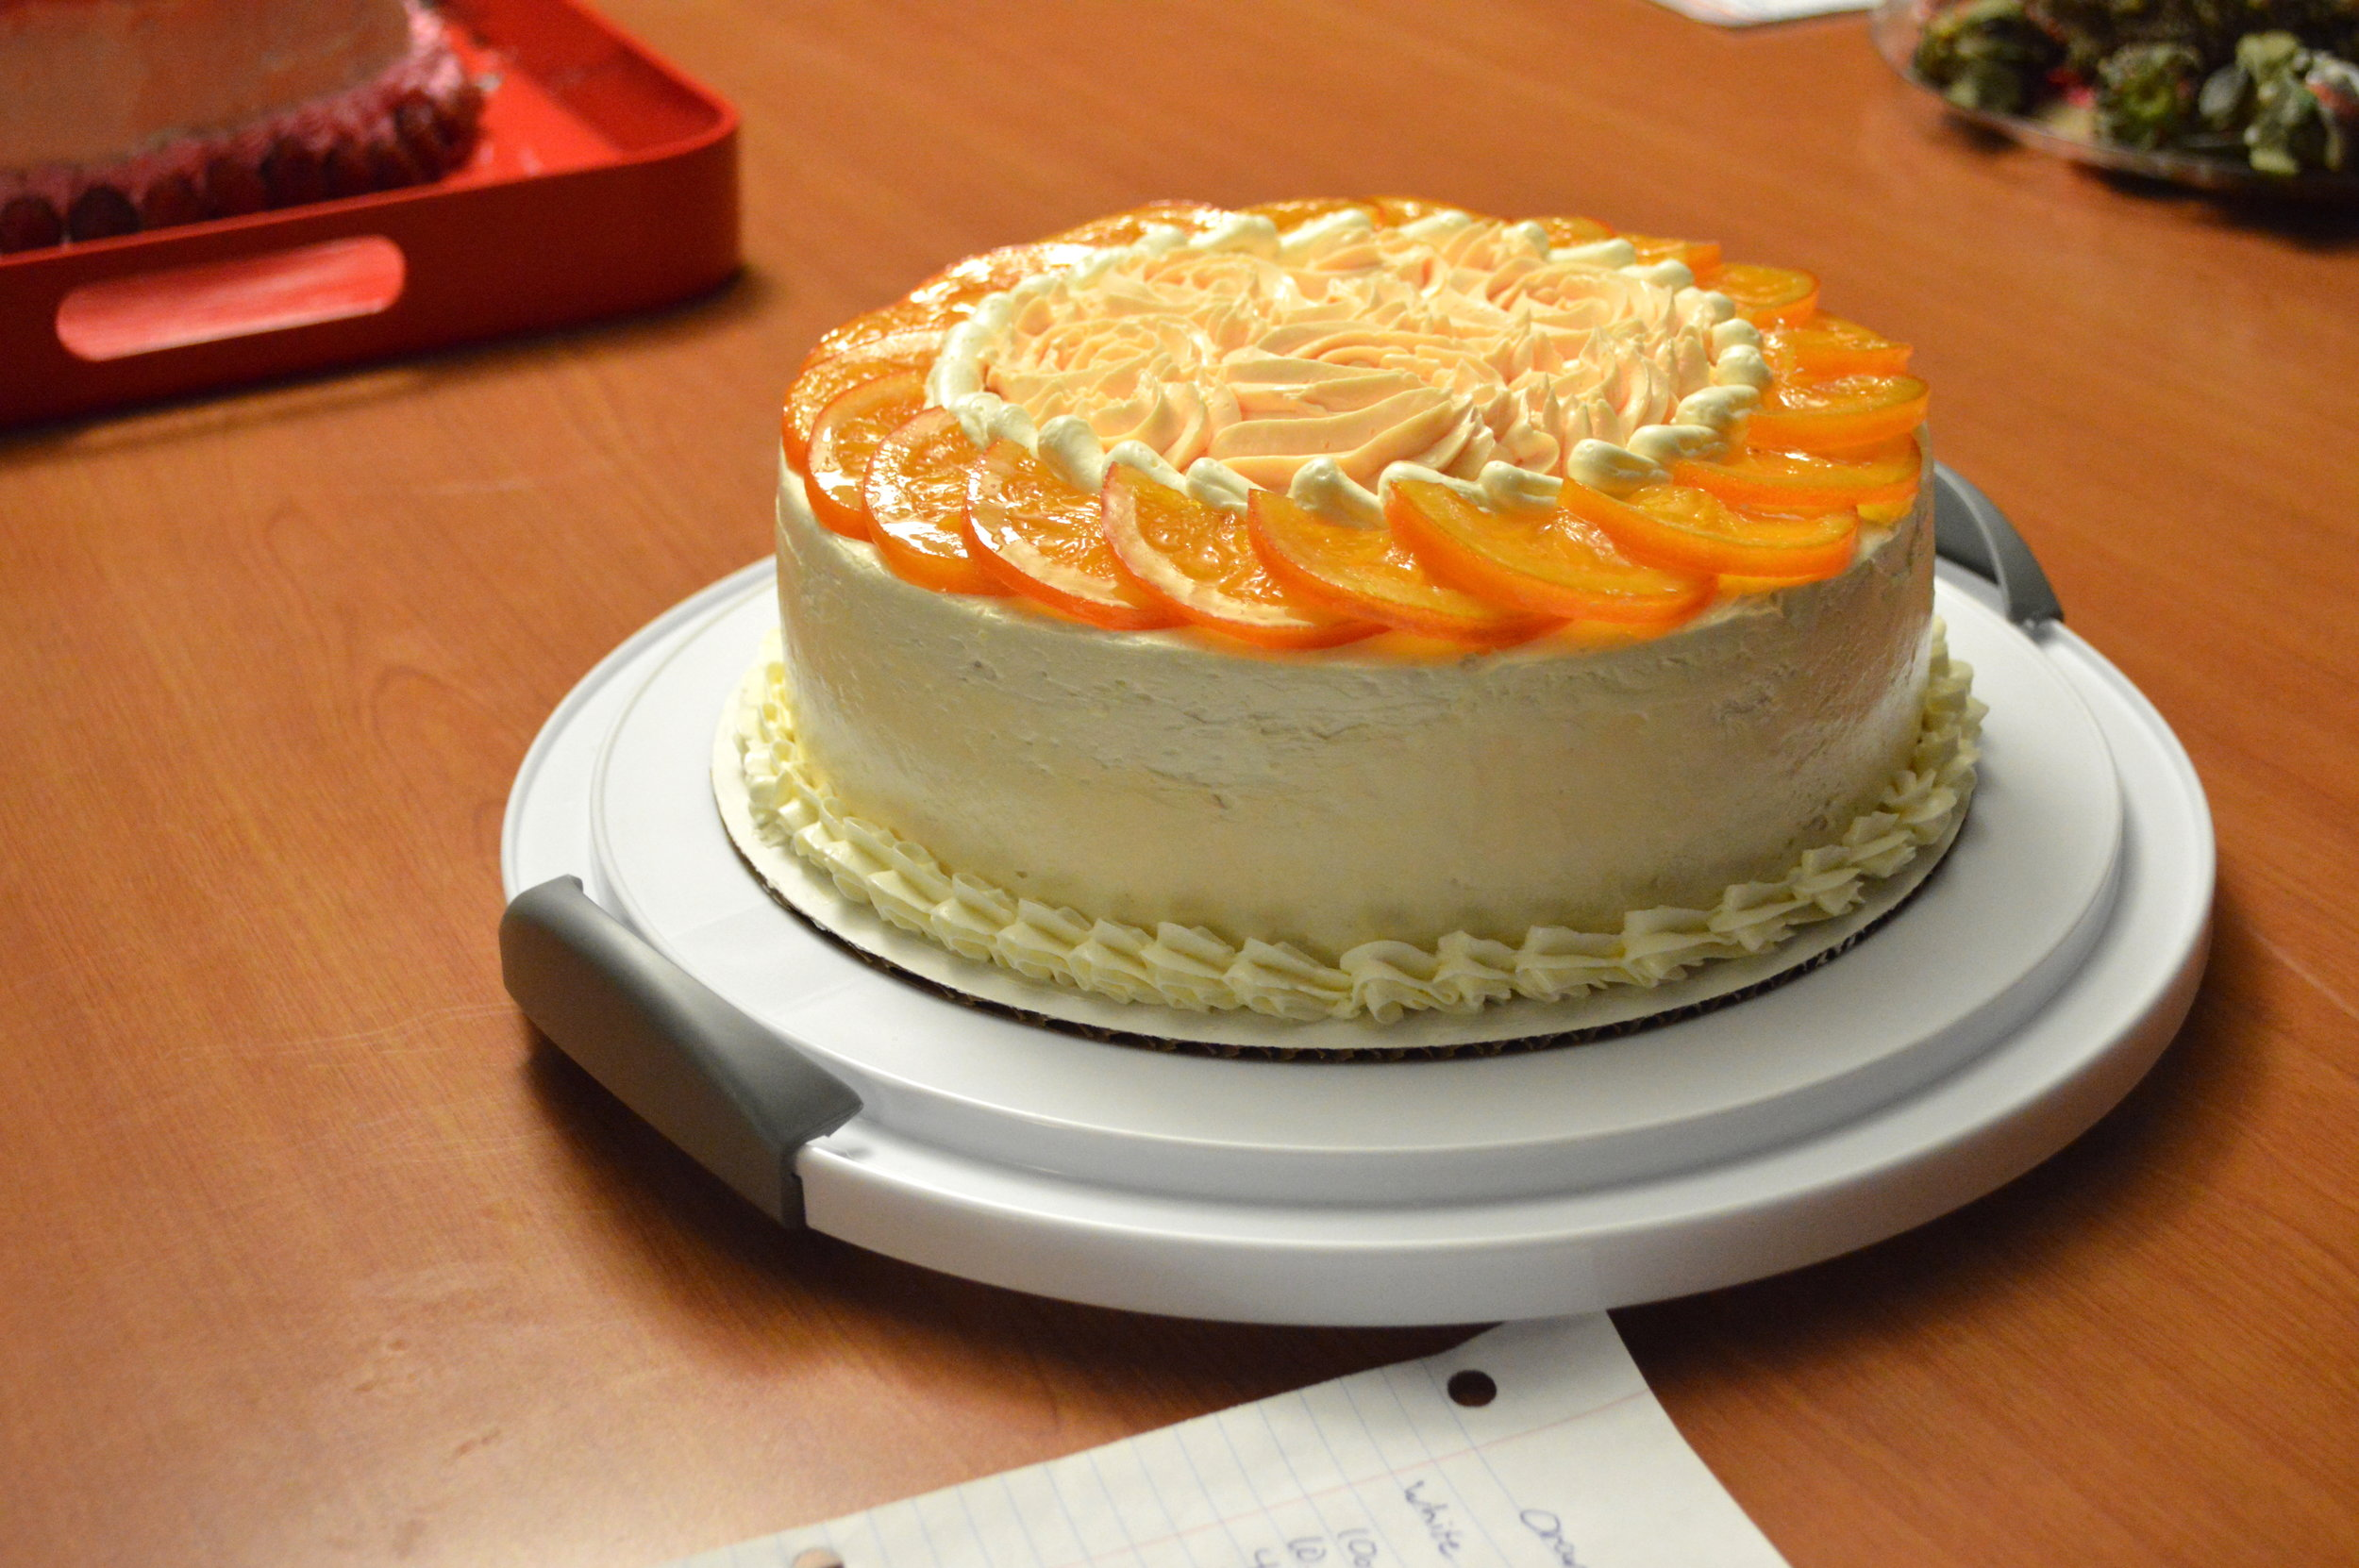 2nd Place - Ian McVaugh, CCAC Culinary - Orange, Cardamom, Vanilla Layer Cake with Italian Buttercream